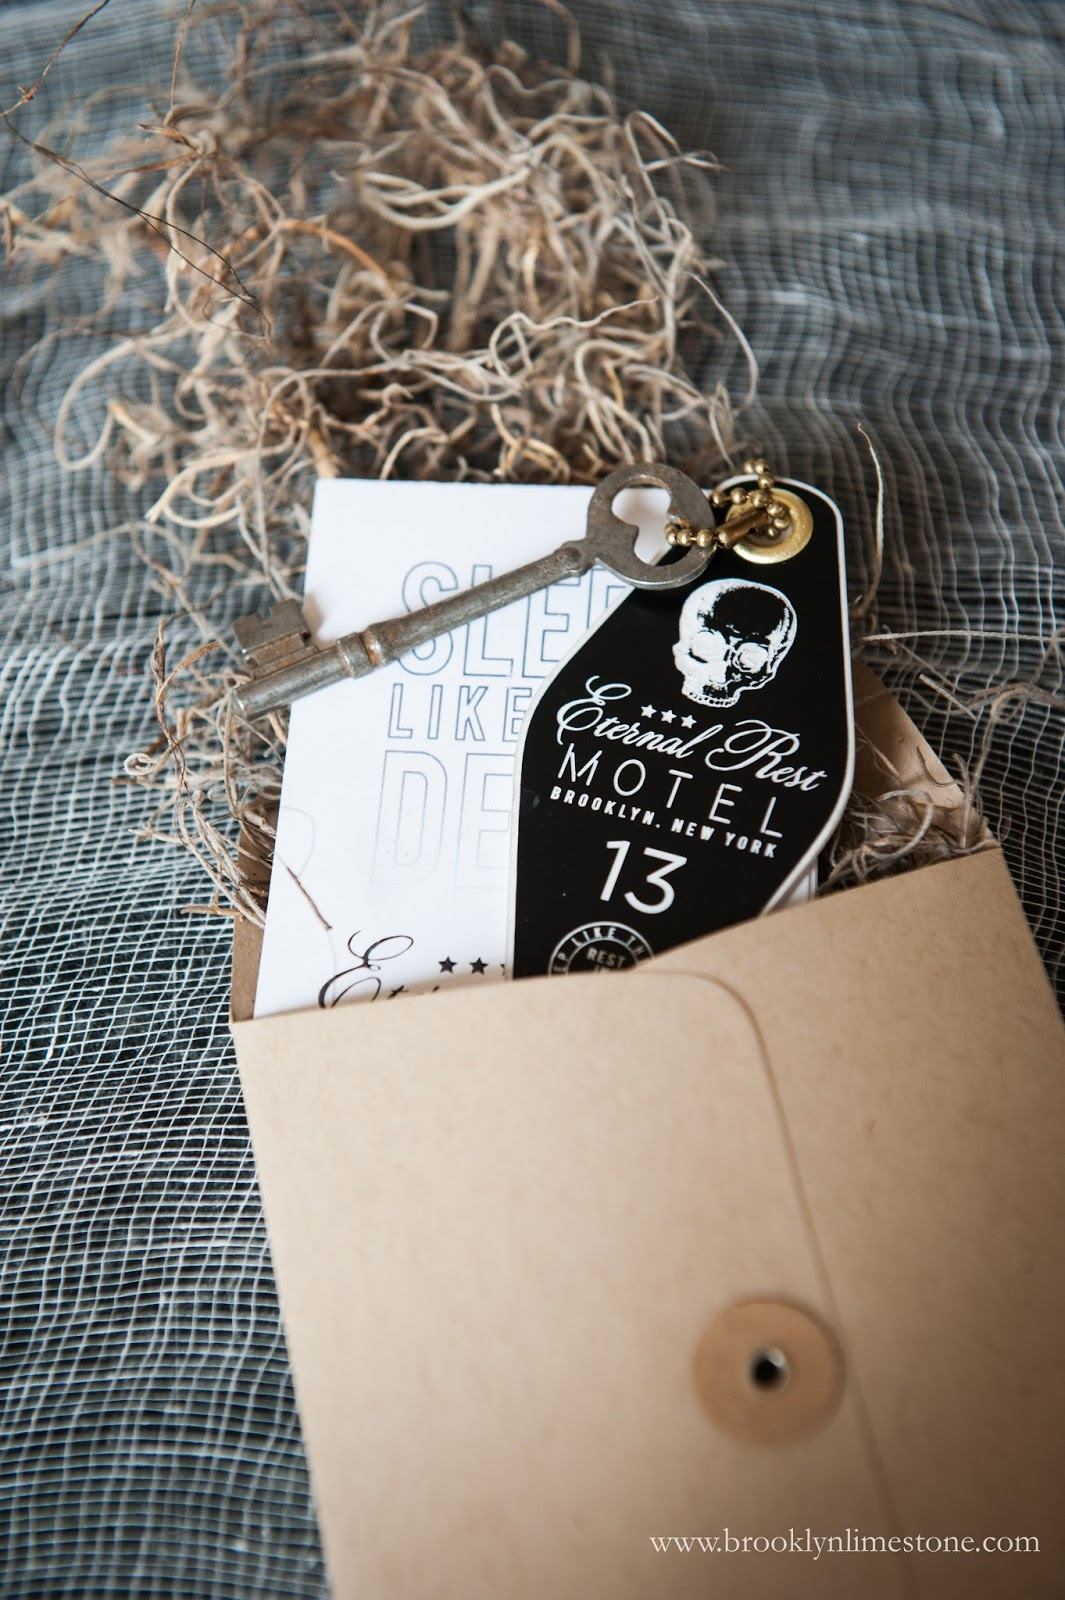 Eternal rest hotel key fobs halloween invitations brooklyn limestone think candy crazed kids running around my living room and youll have a good idea but i couldnt resist sending a proper invitation just the same stopboris Choice Image